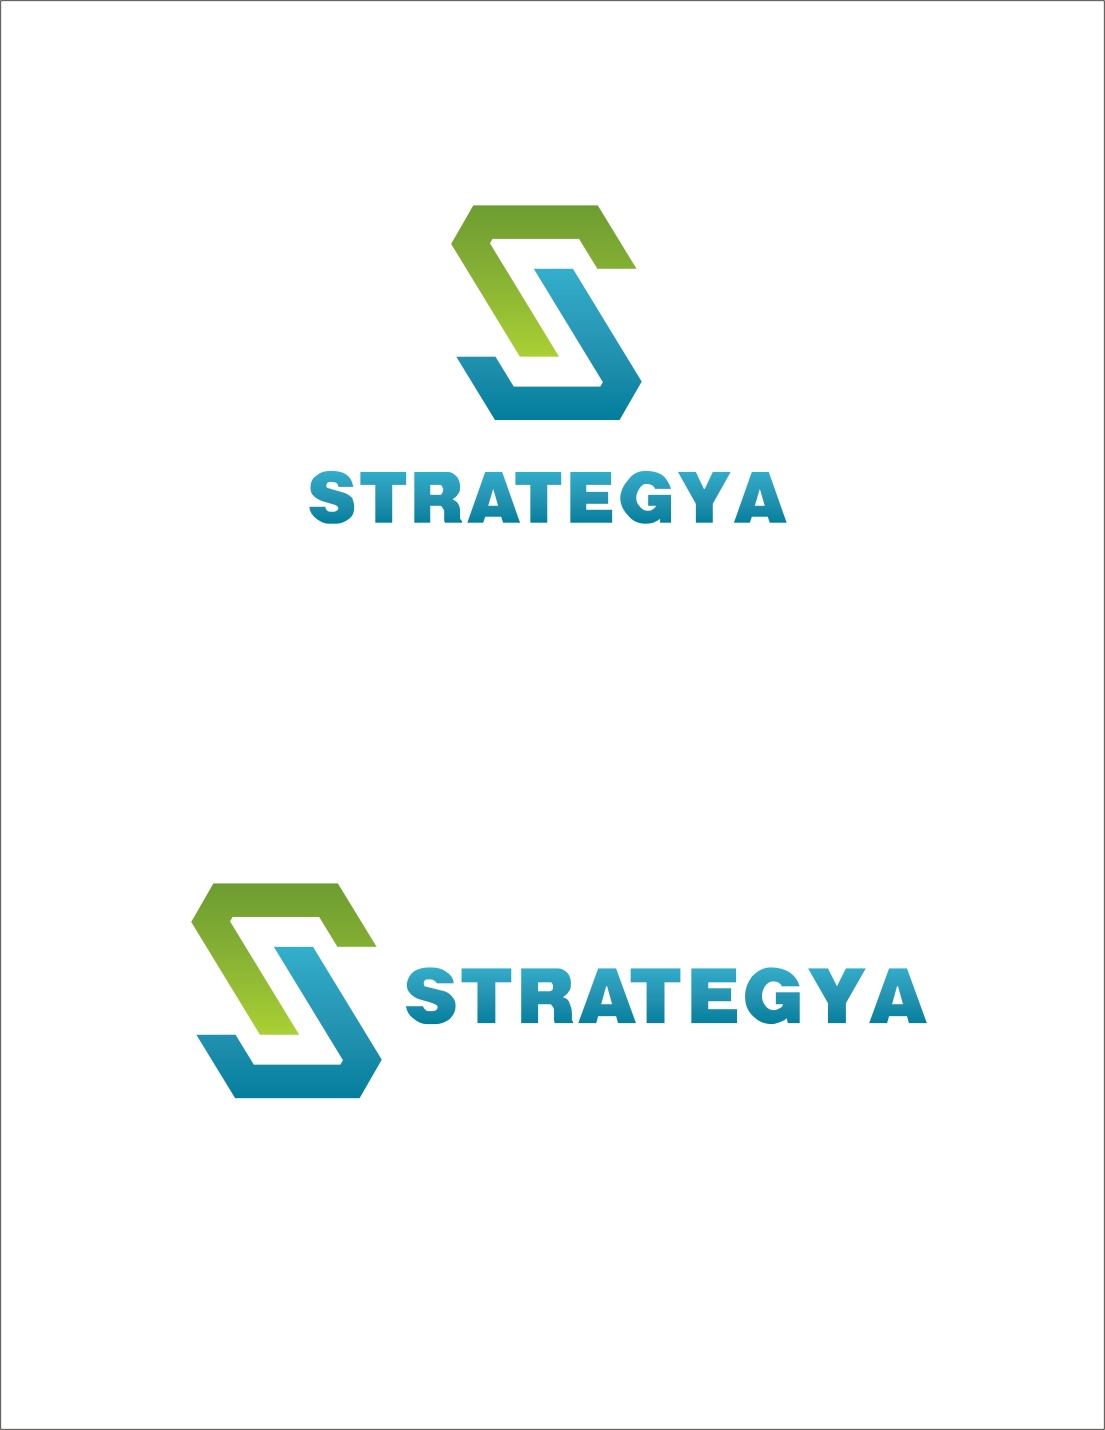 Logo Design by Private User - Entry No. 36 in the Logo Design Contest Creative Logo Design for Strategyah.